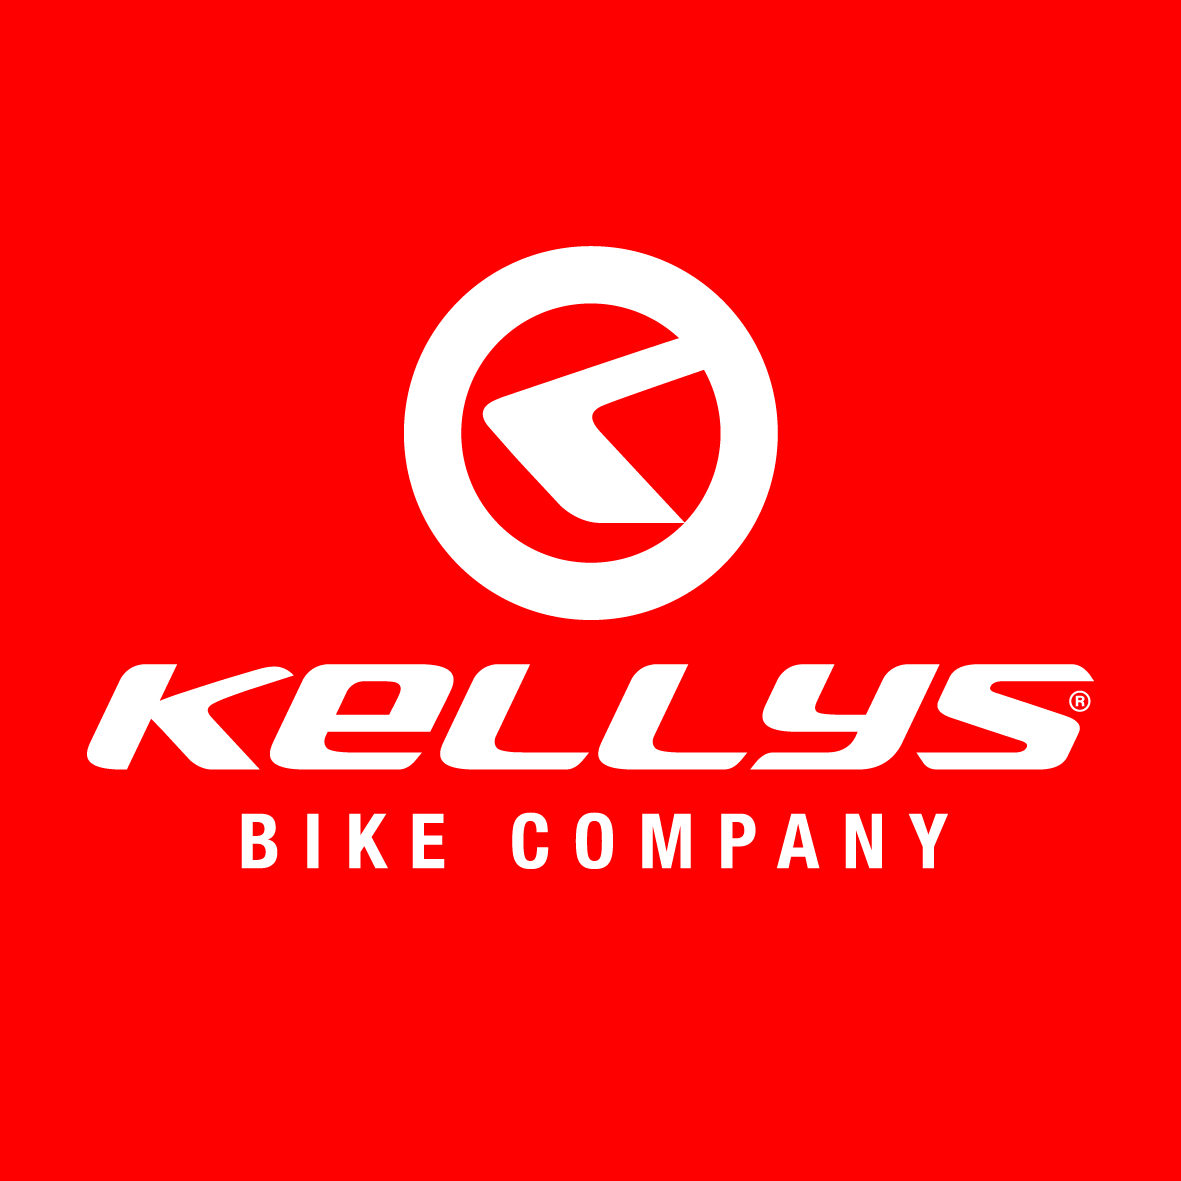 KELLYS_LOGO_red_square